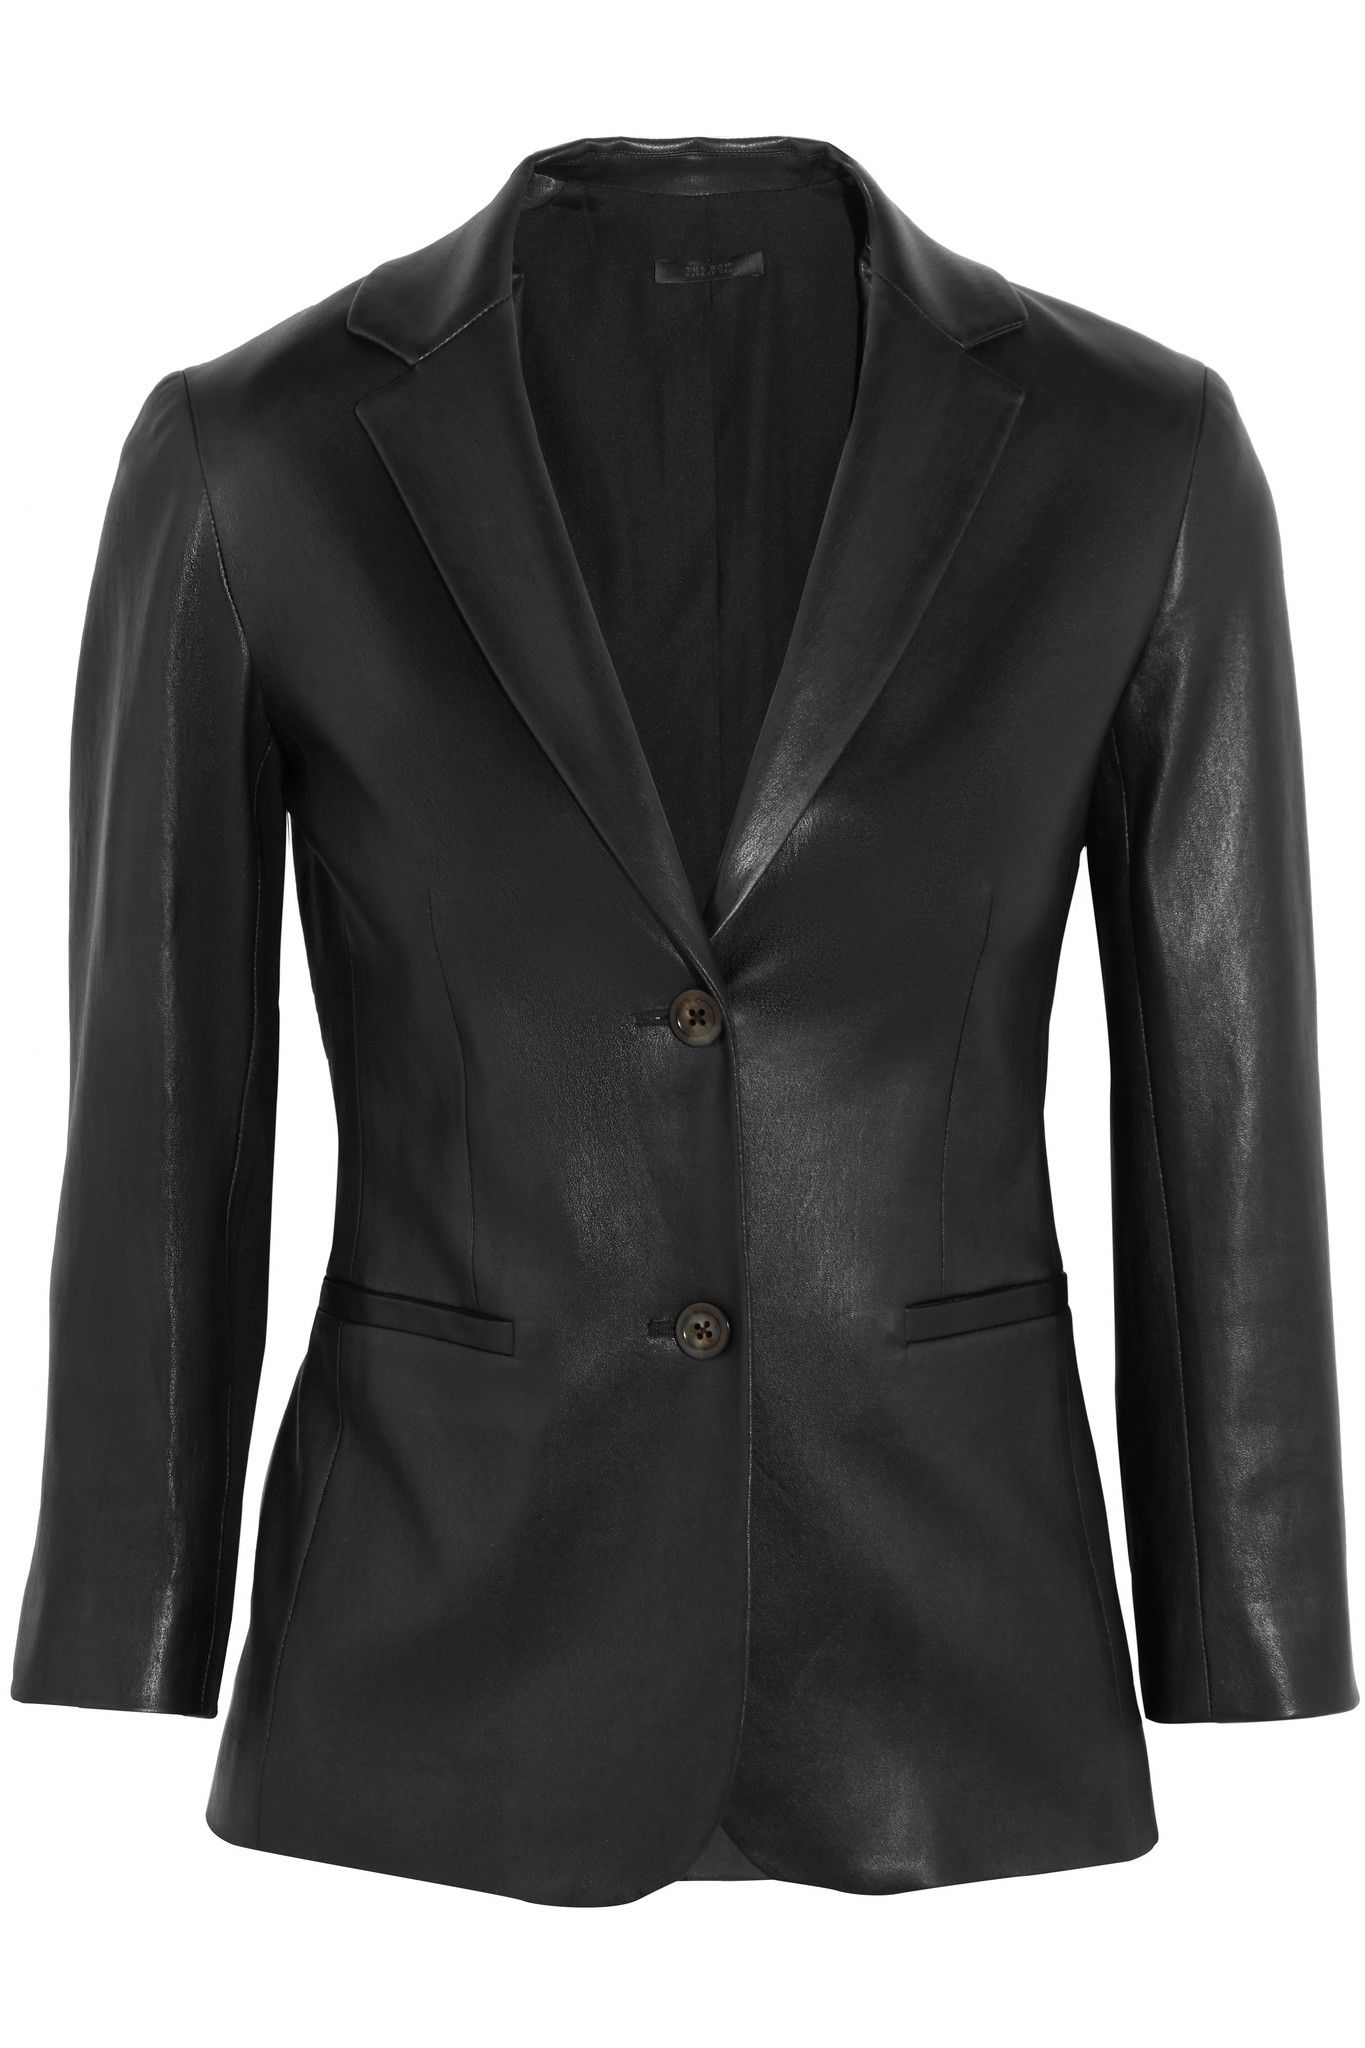 THE ROW Nolbon leather blazer  $3,345.00 https://www.net-a-porter.com/product/836096